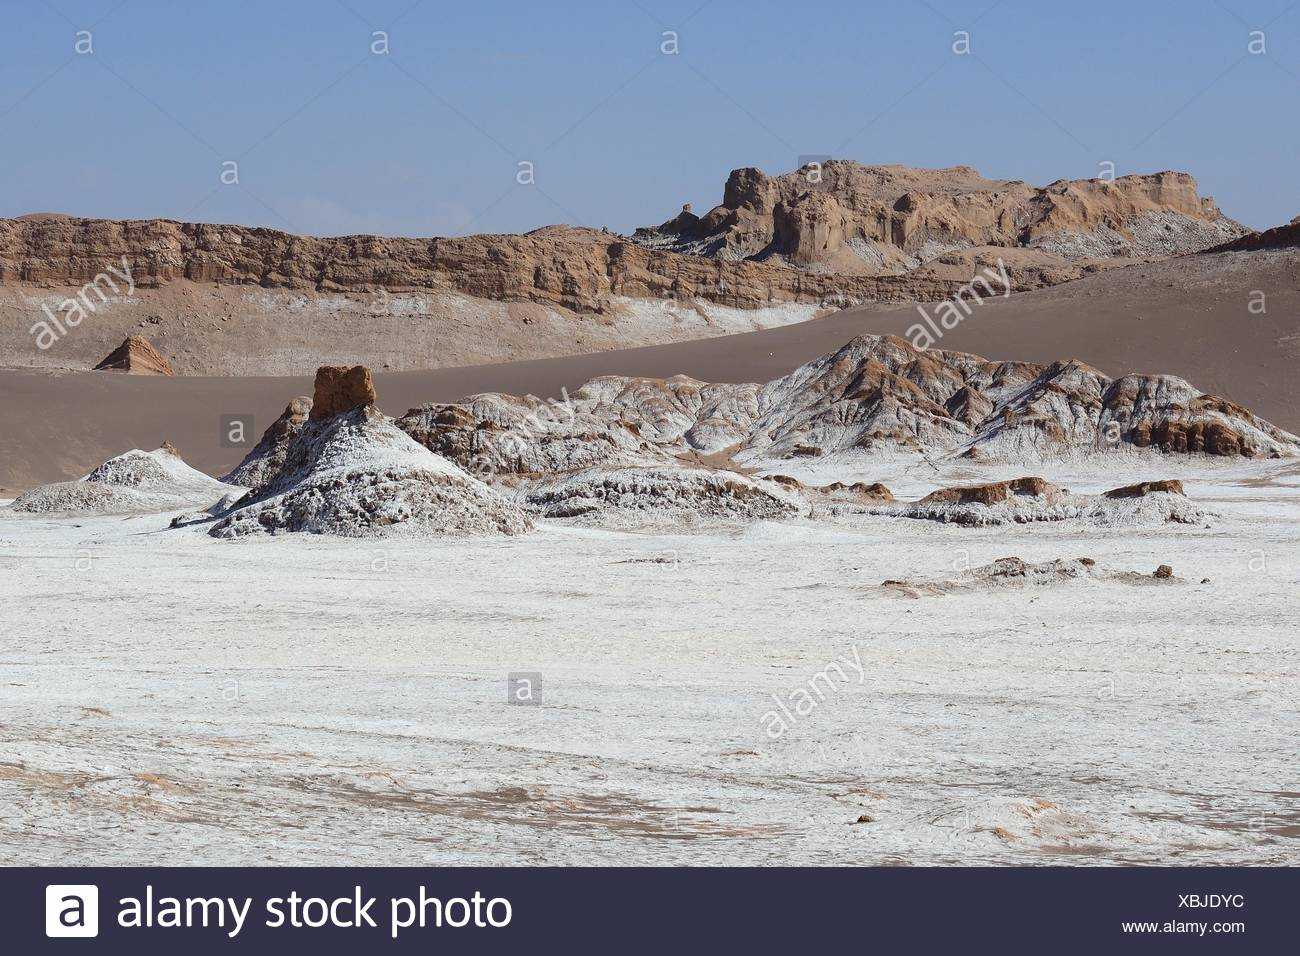 Salt surface in the Valley of the Moon, Valle de la Luna, San Pedro de Atacama, Antofagasta, Chile - Stock Image